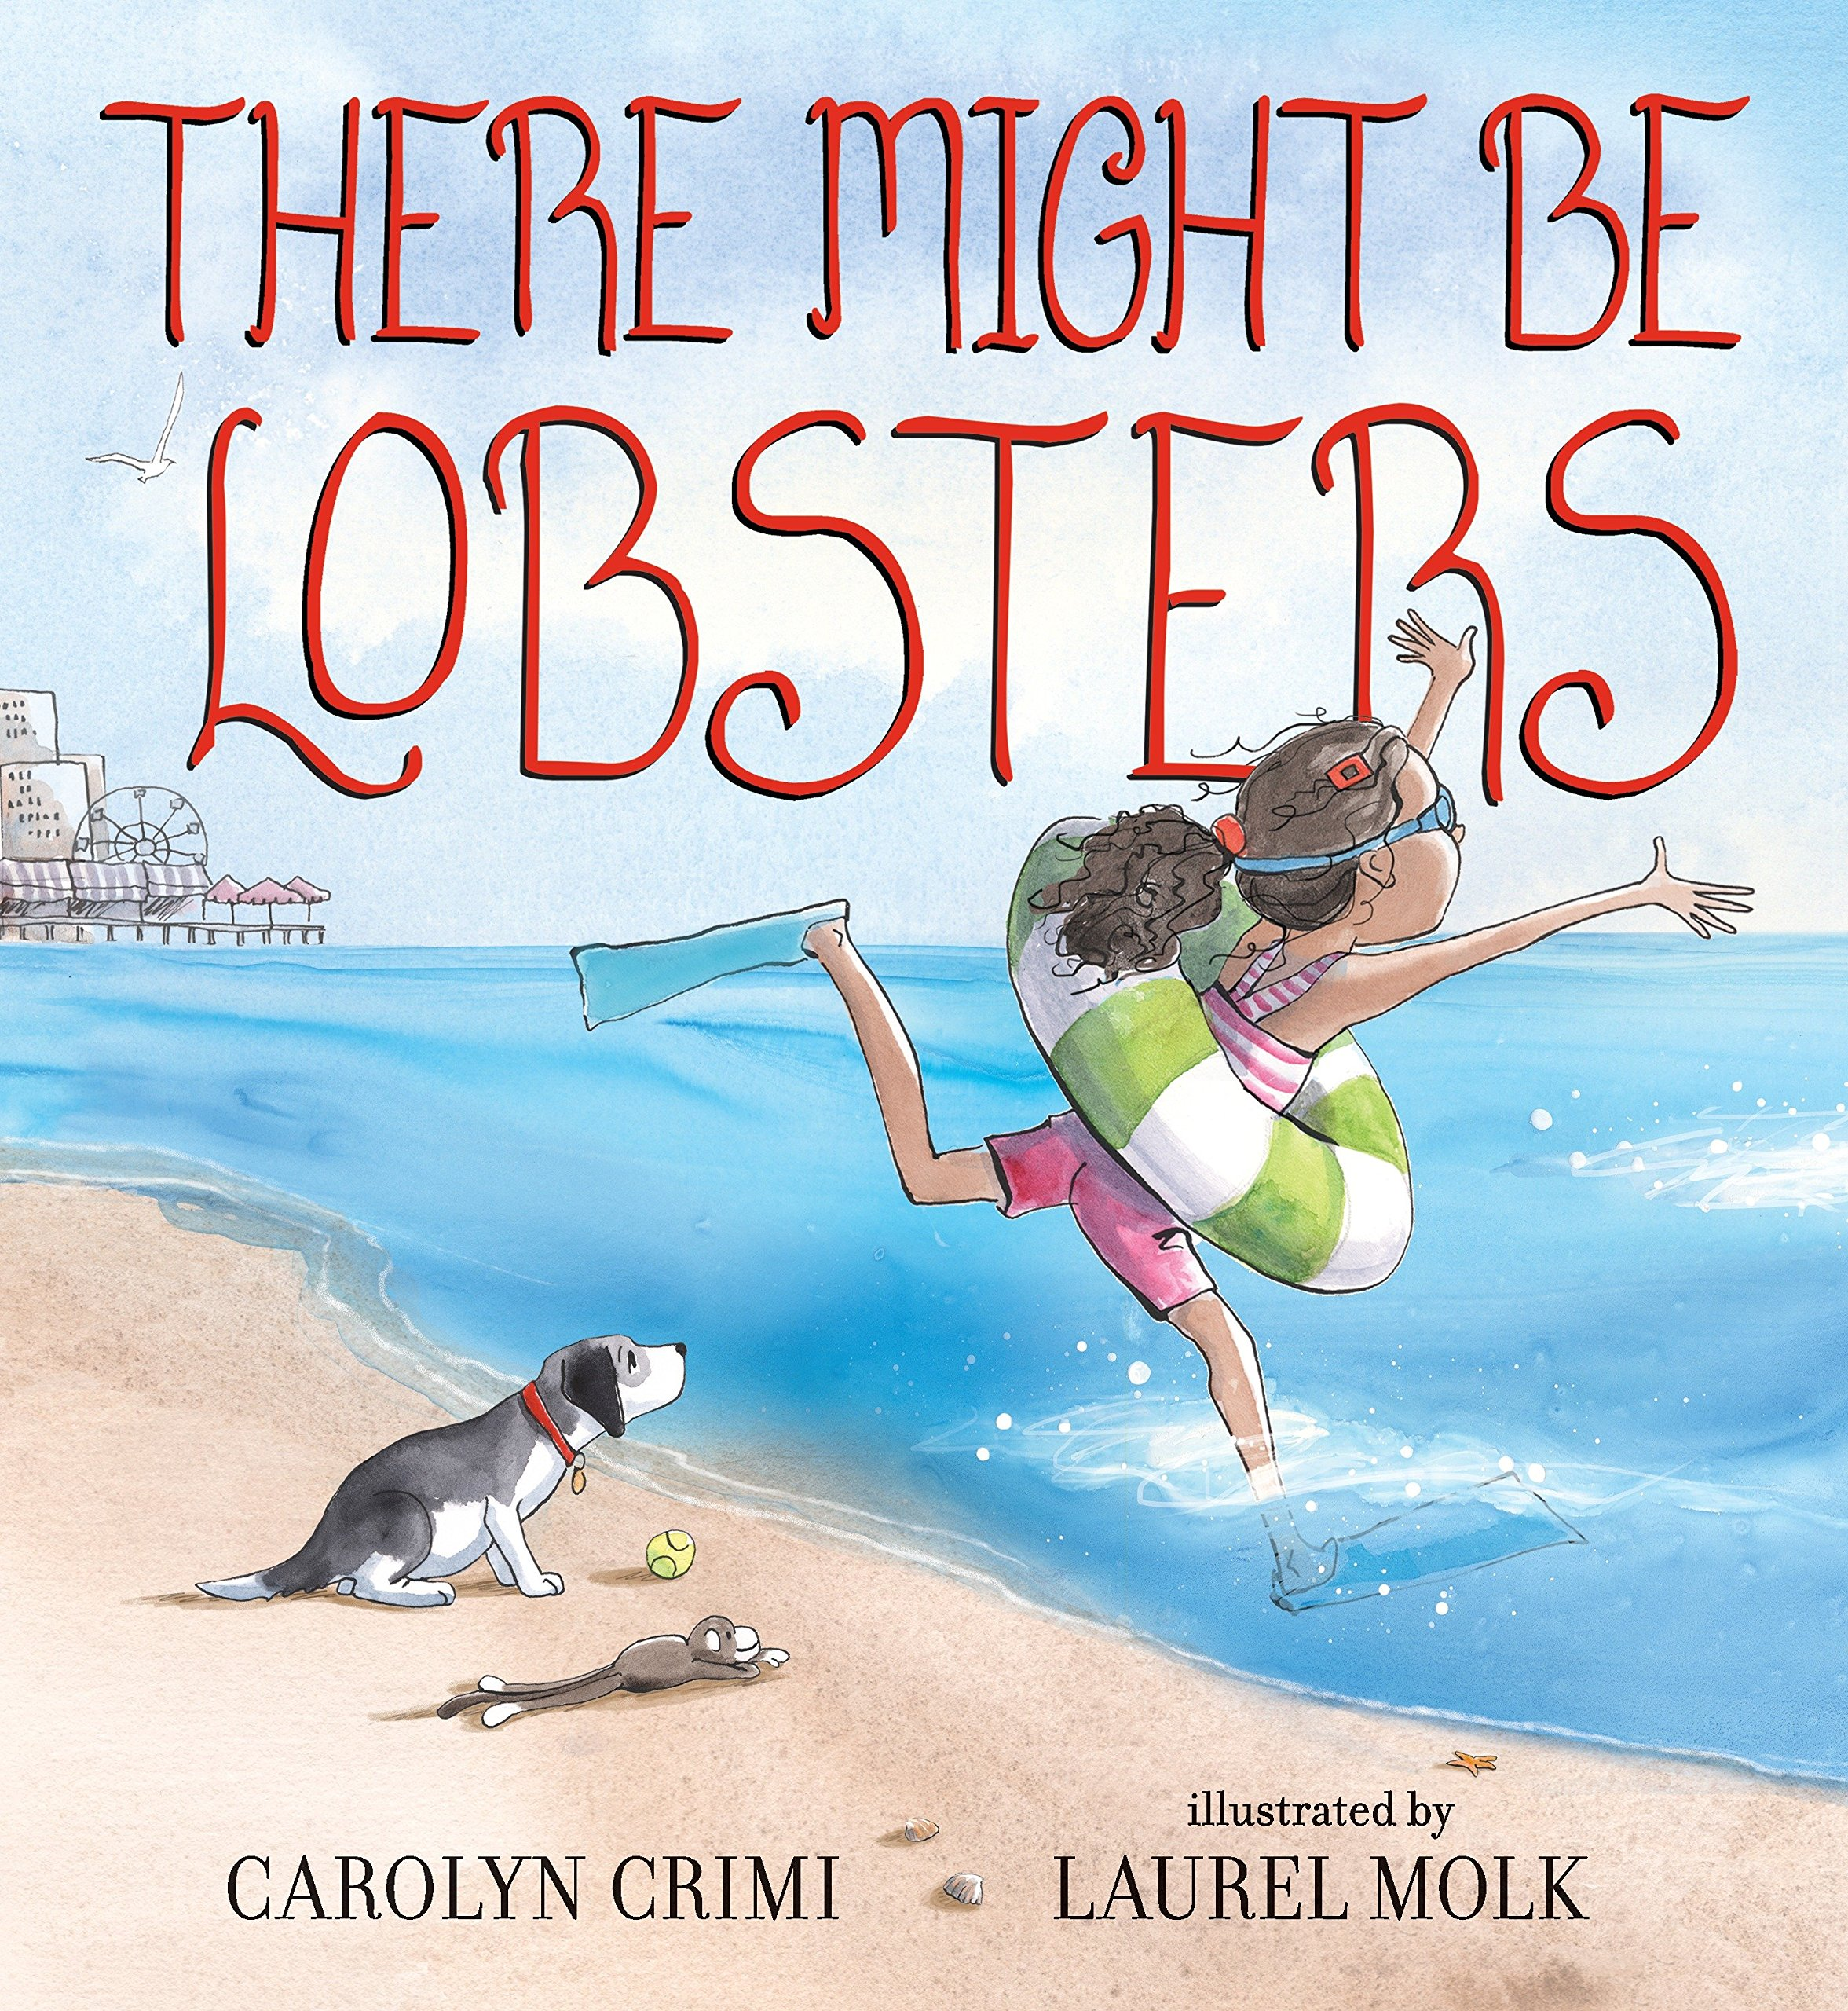 Image result for there might be lobsters